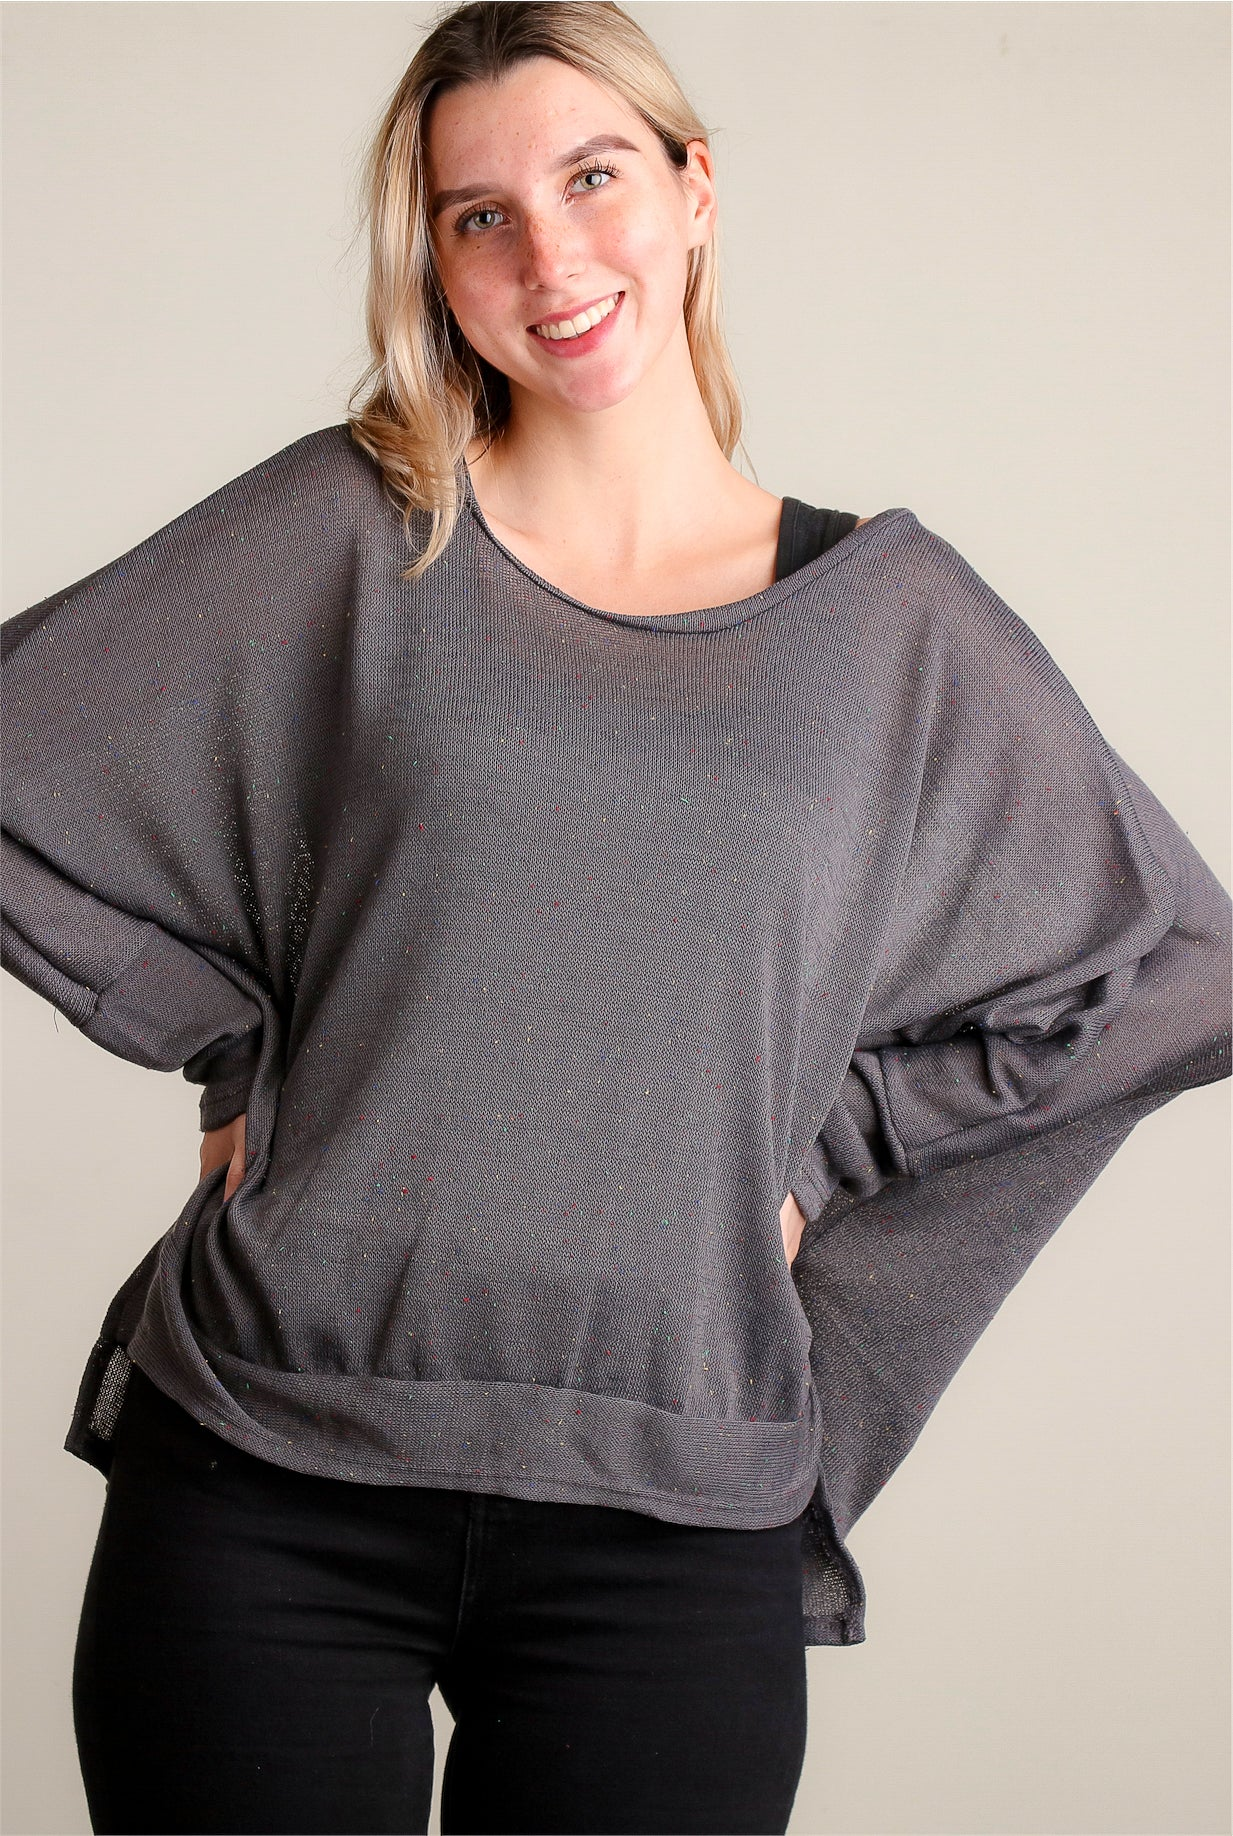 Charcoal Soft Round Neck Dolman Blouse